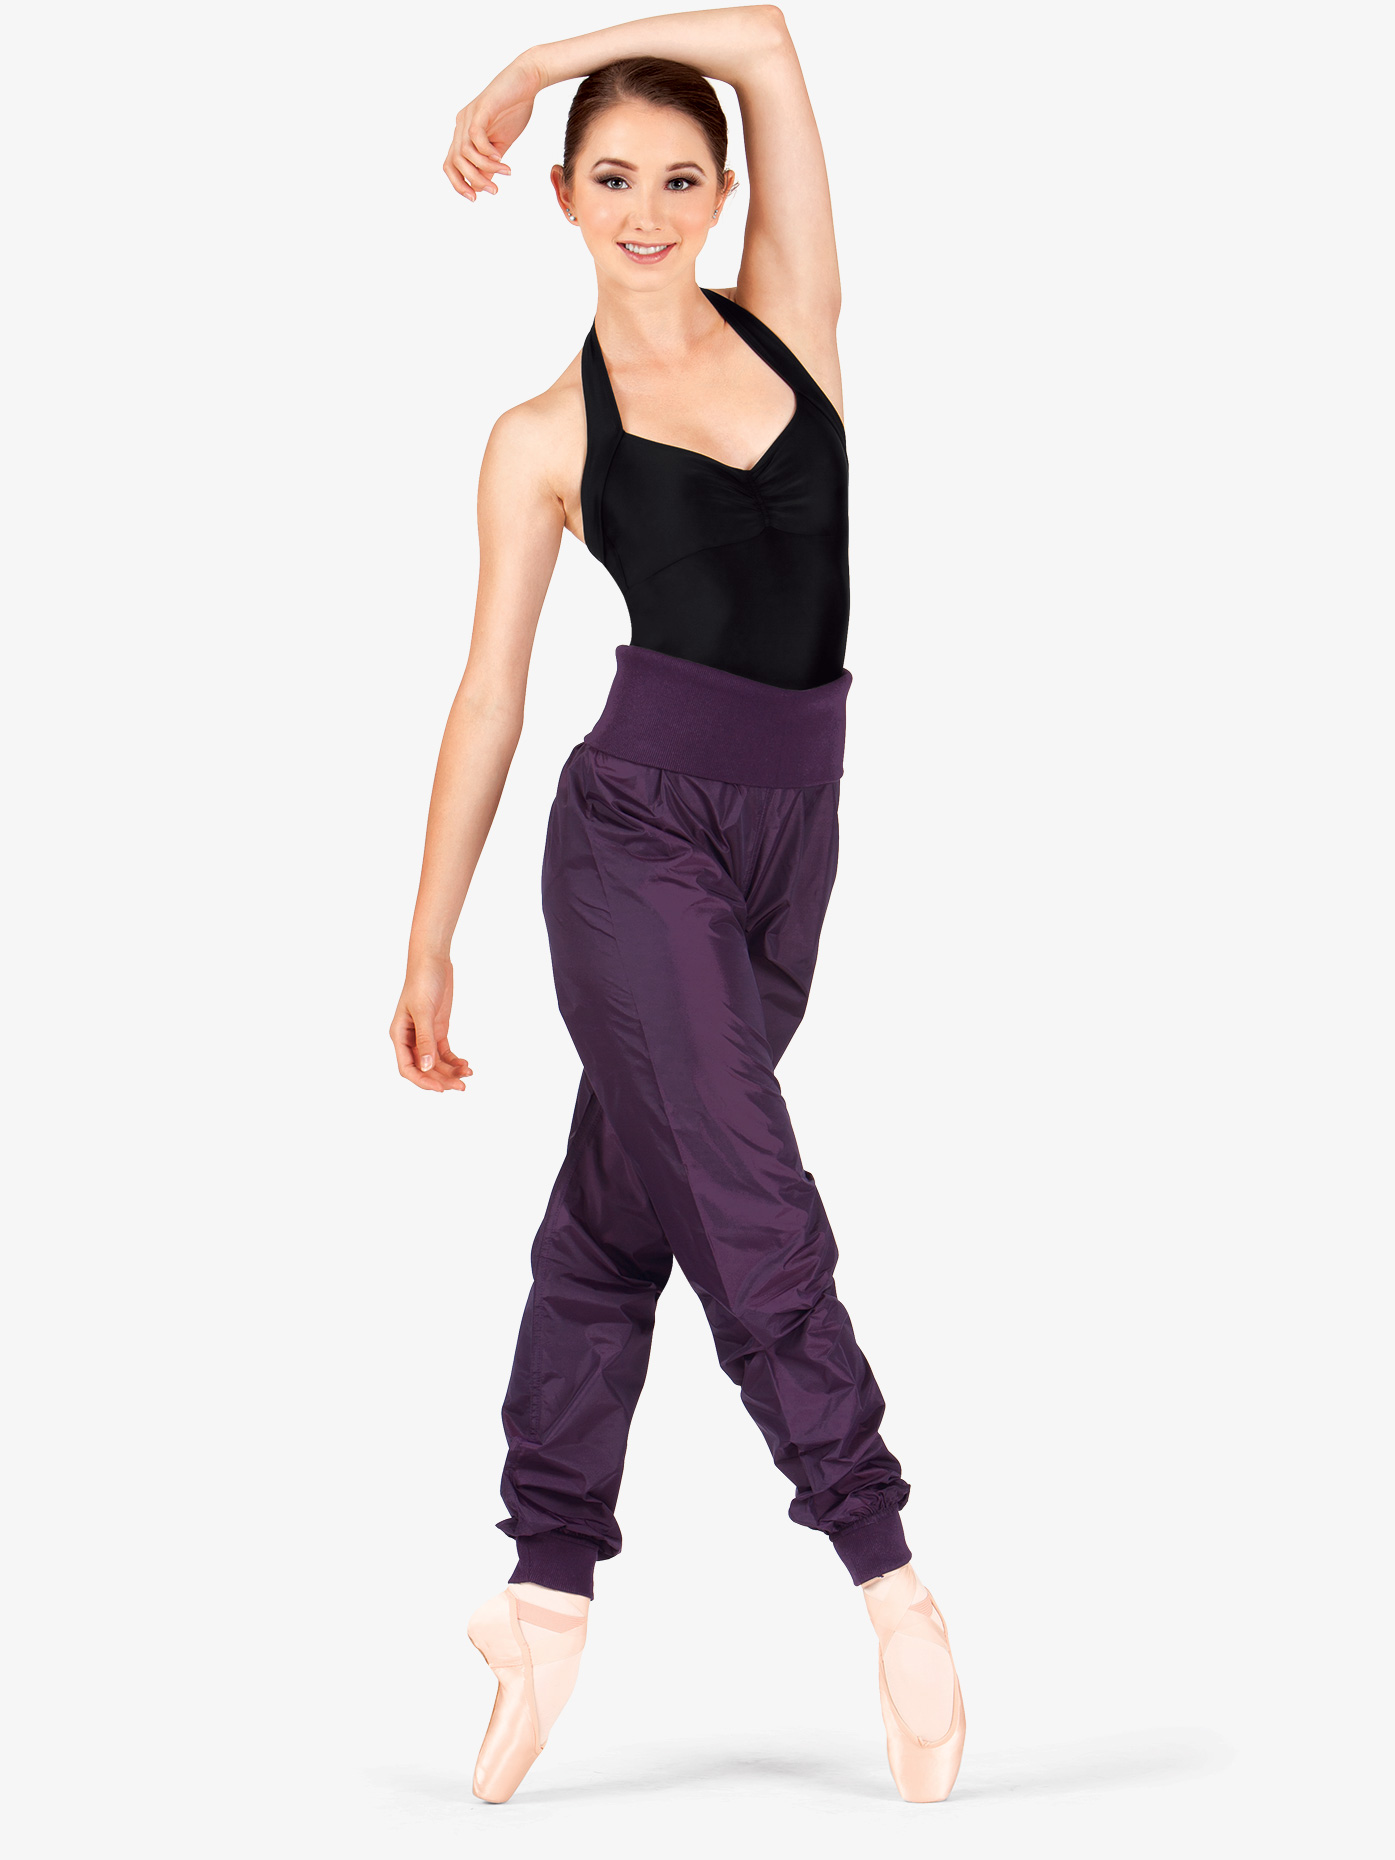 Sansha Adult High Waist Garbage Bag Dance Pants L0108N